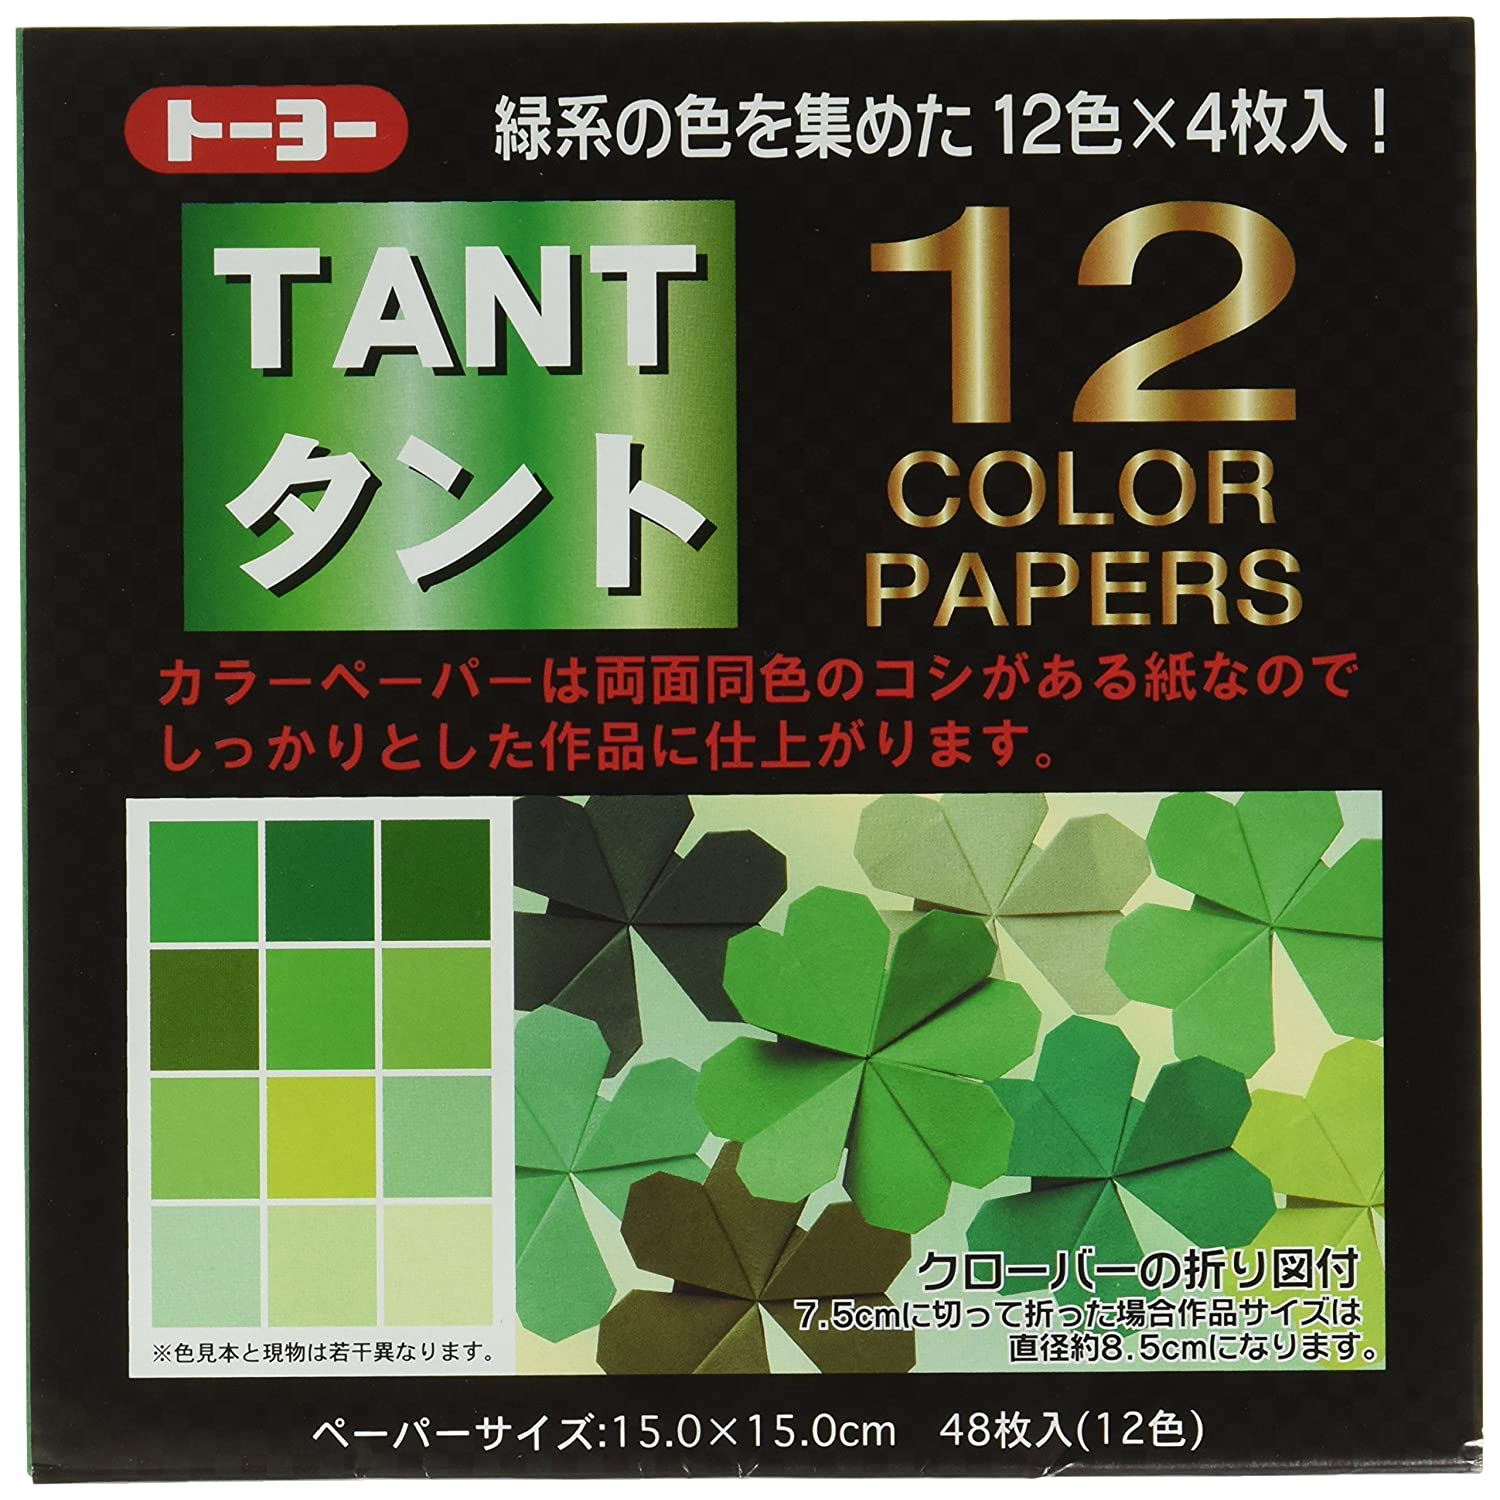 Toyo Origami Tant, 15 cm x 15 cm, Green, 12 Colors, 4 Each NaSh-Design 3614